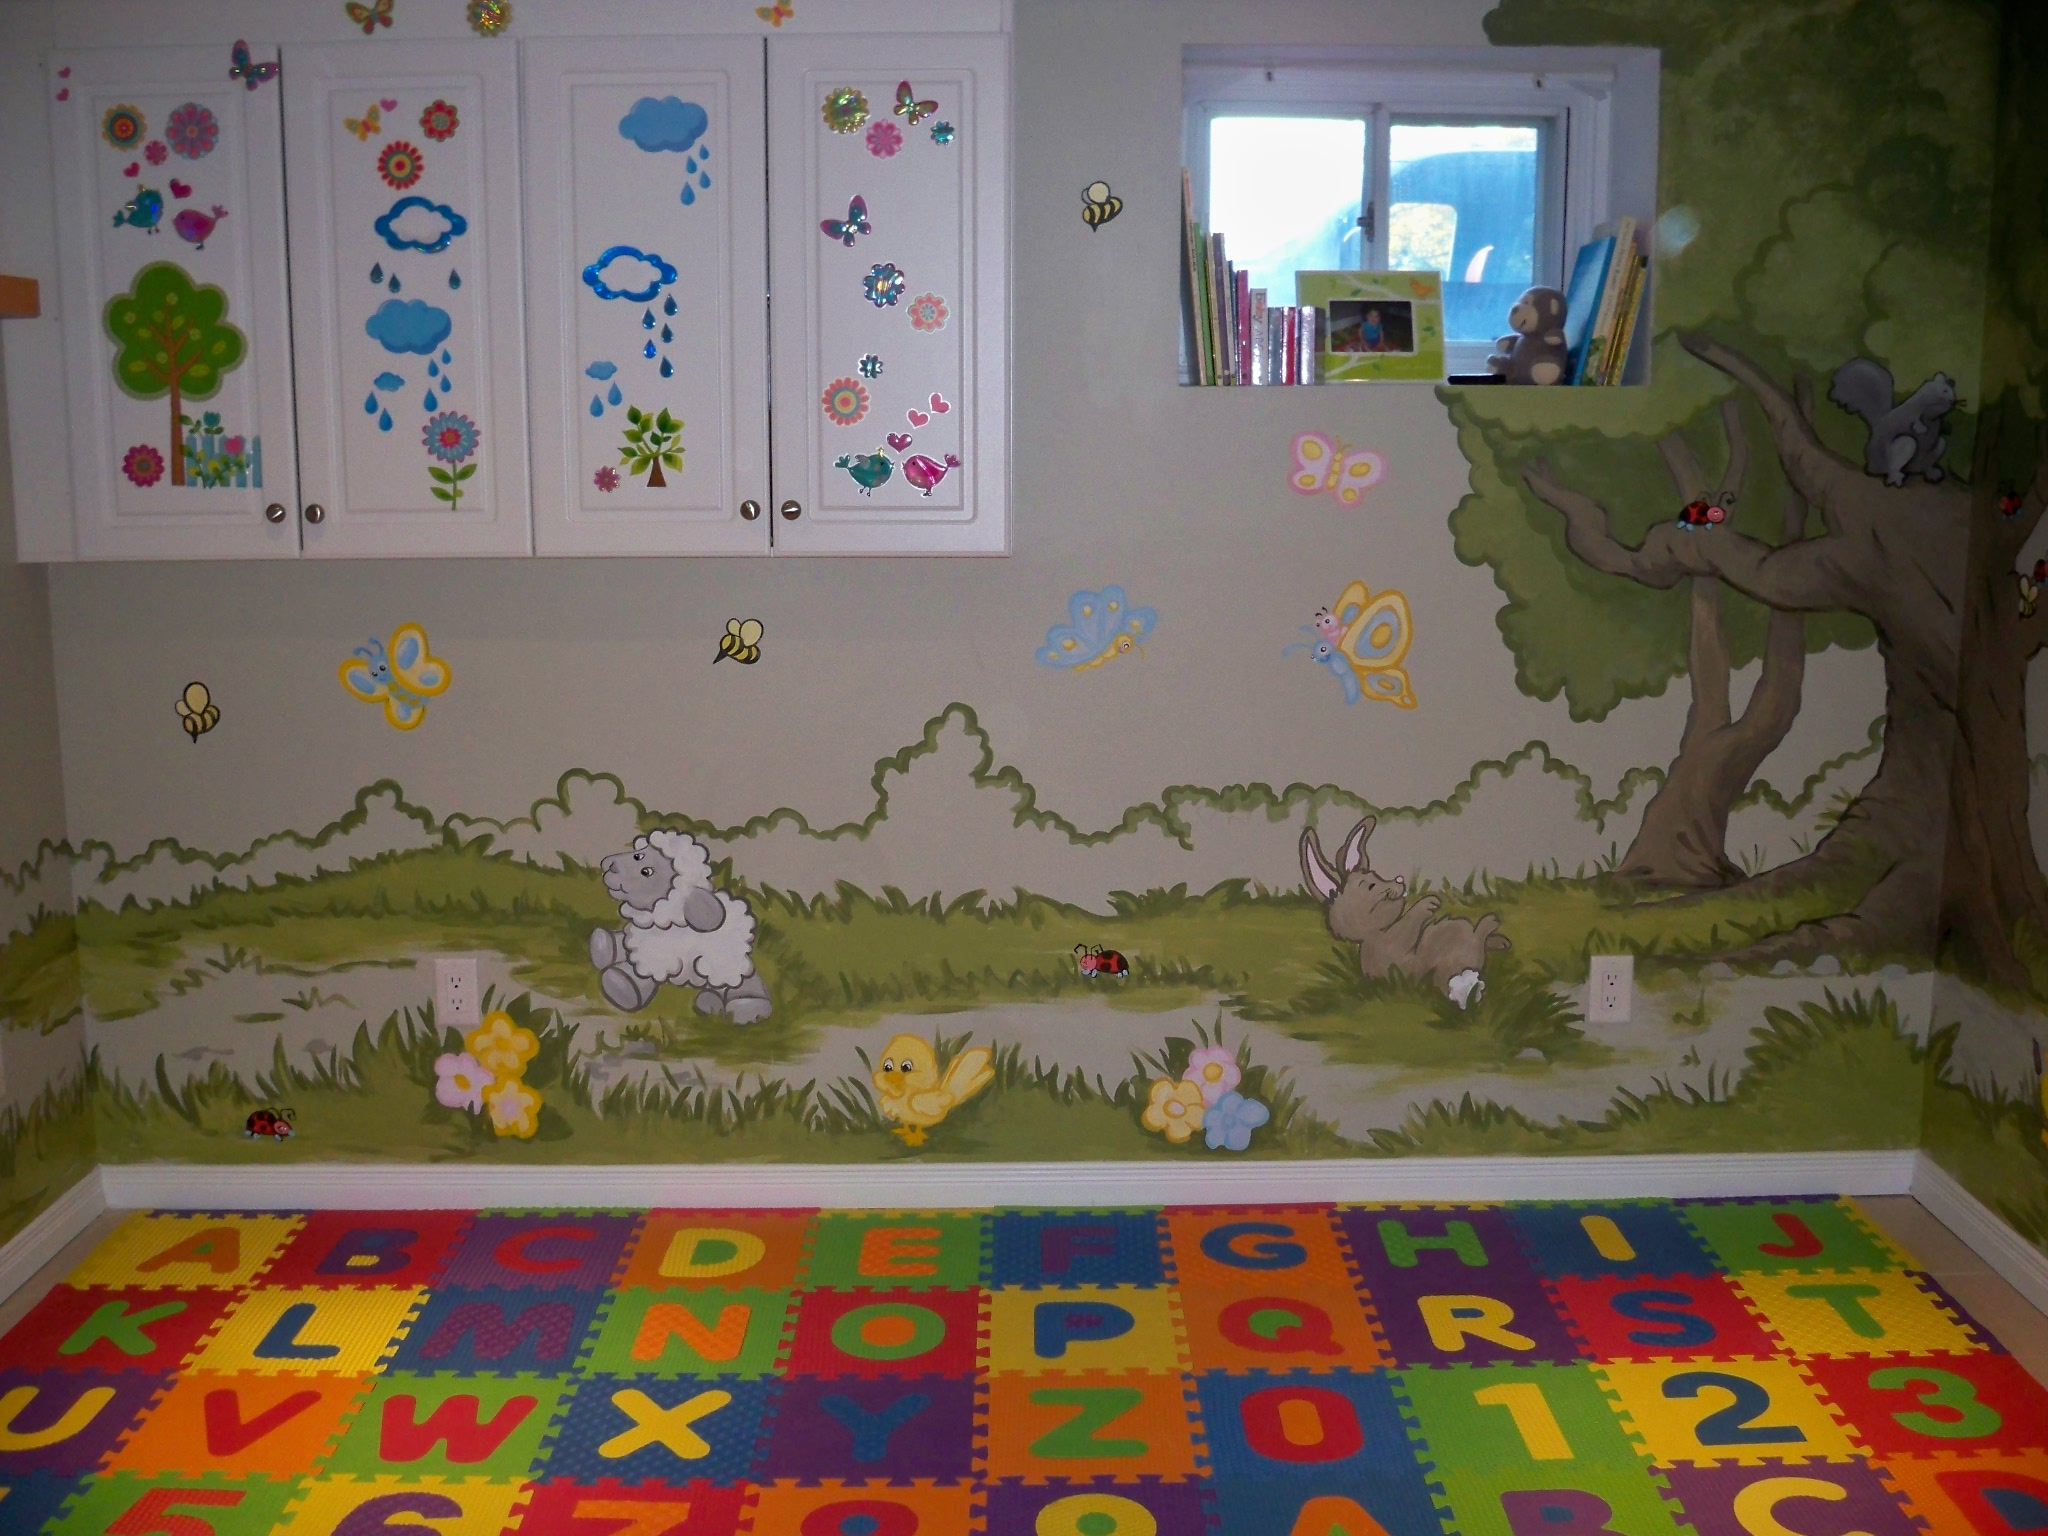 Murals By Marg Genevieve's Playroom Mural 4.JPG